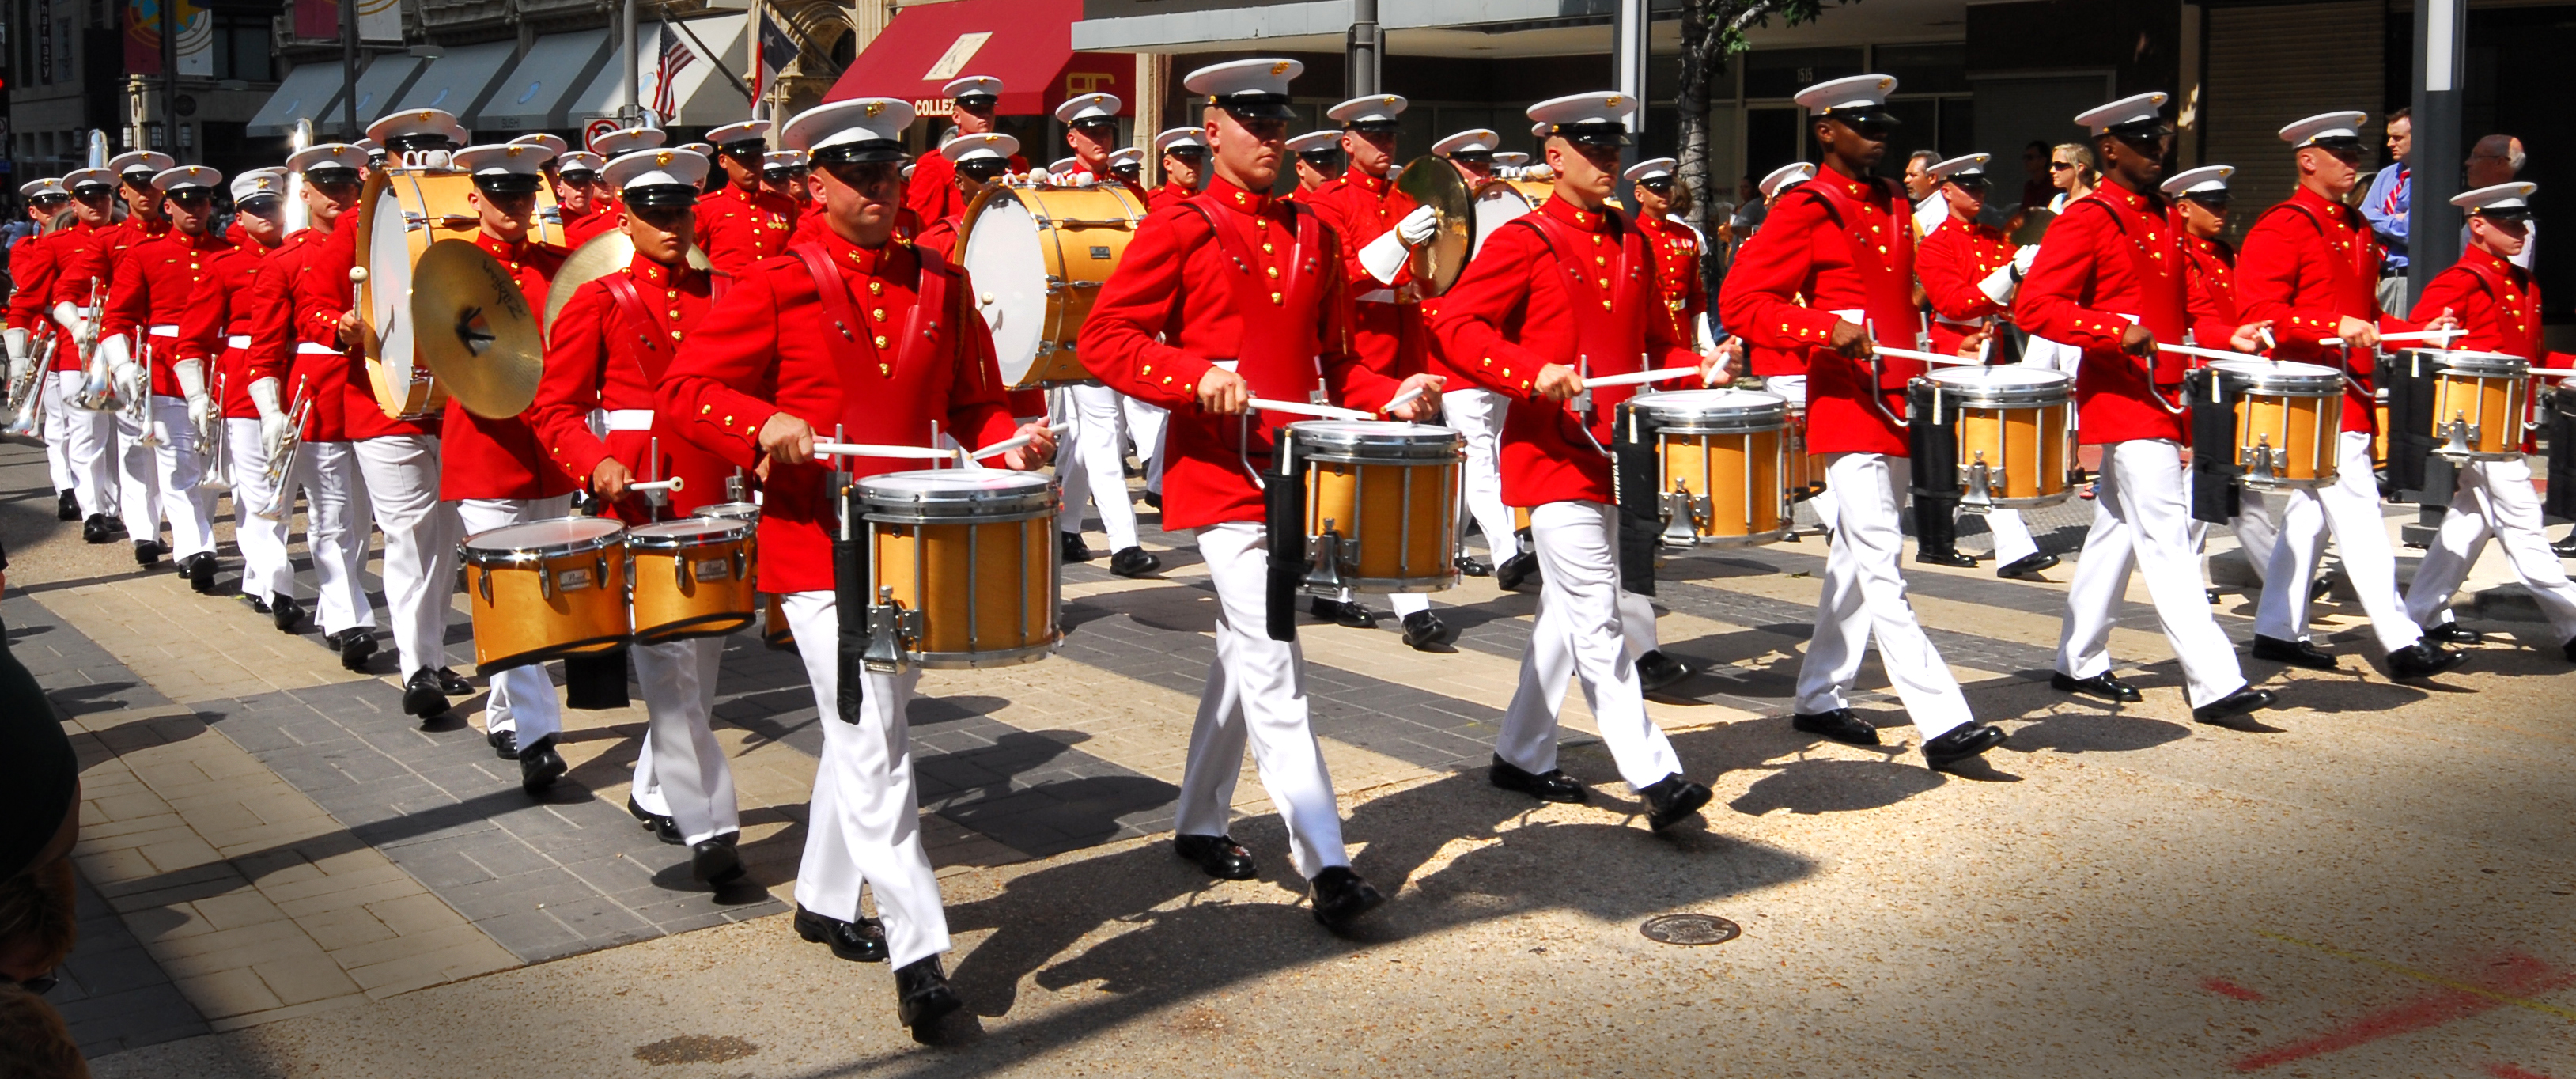 File:Marching band drummers in parade at Texas State Fair ...